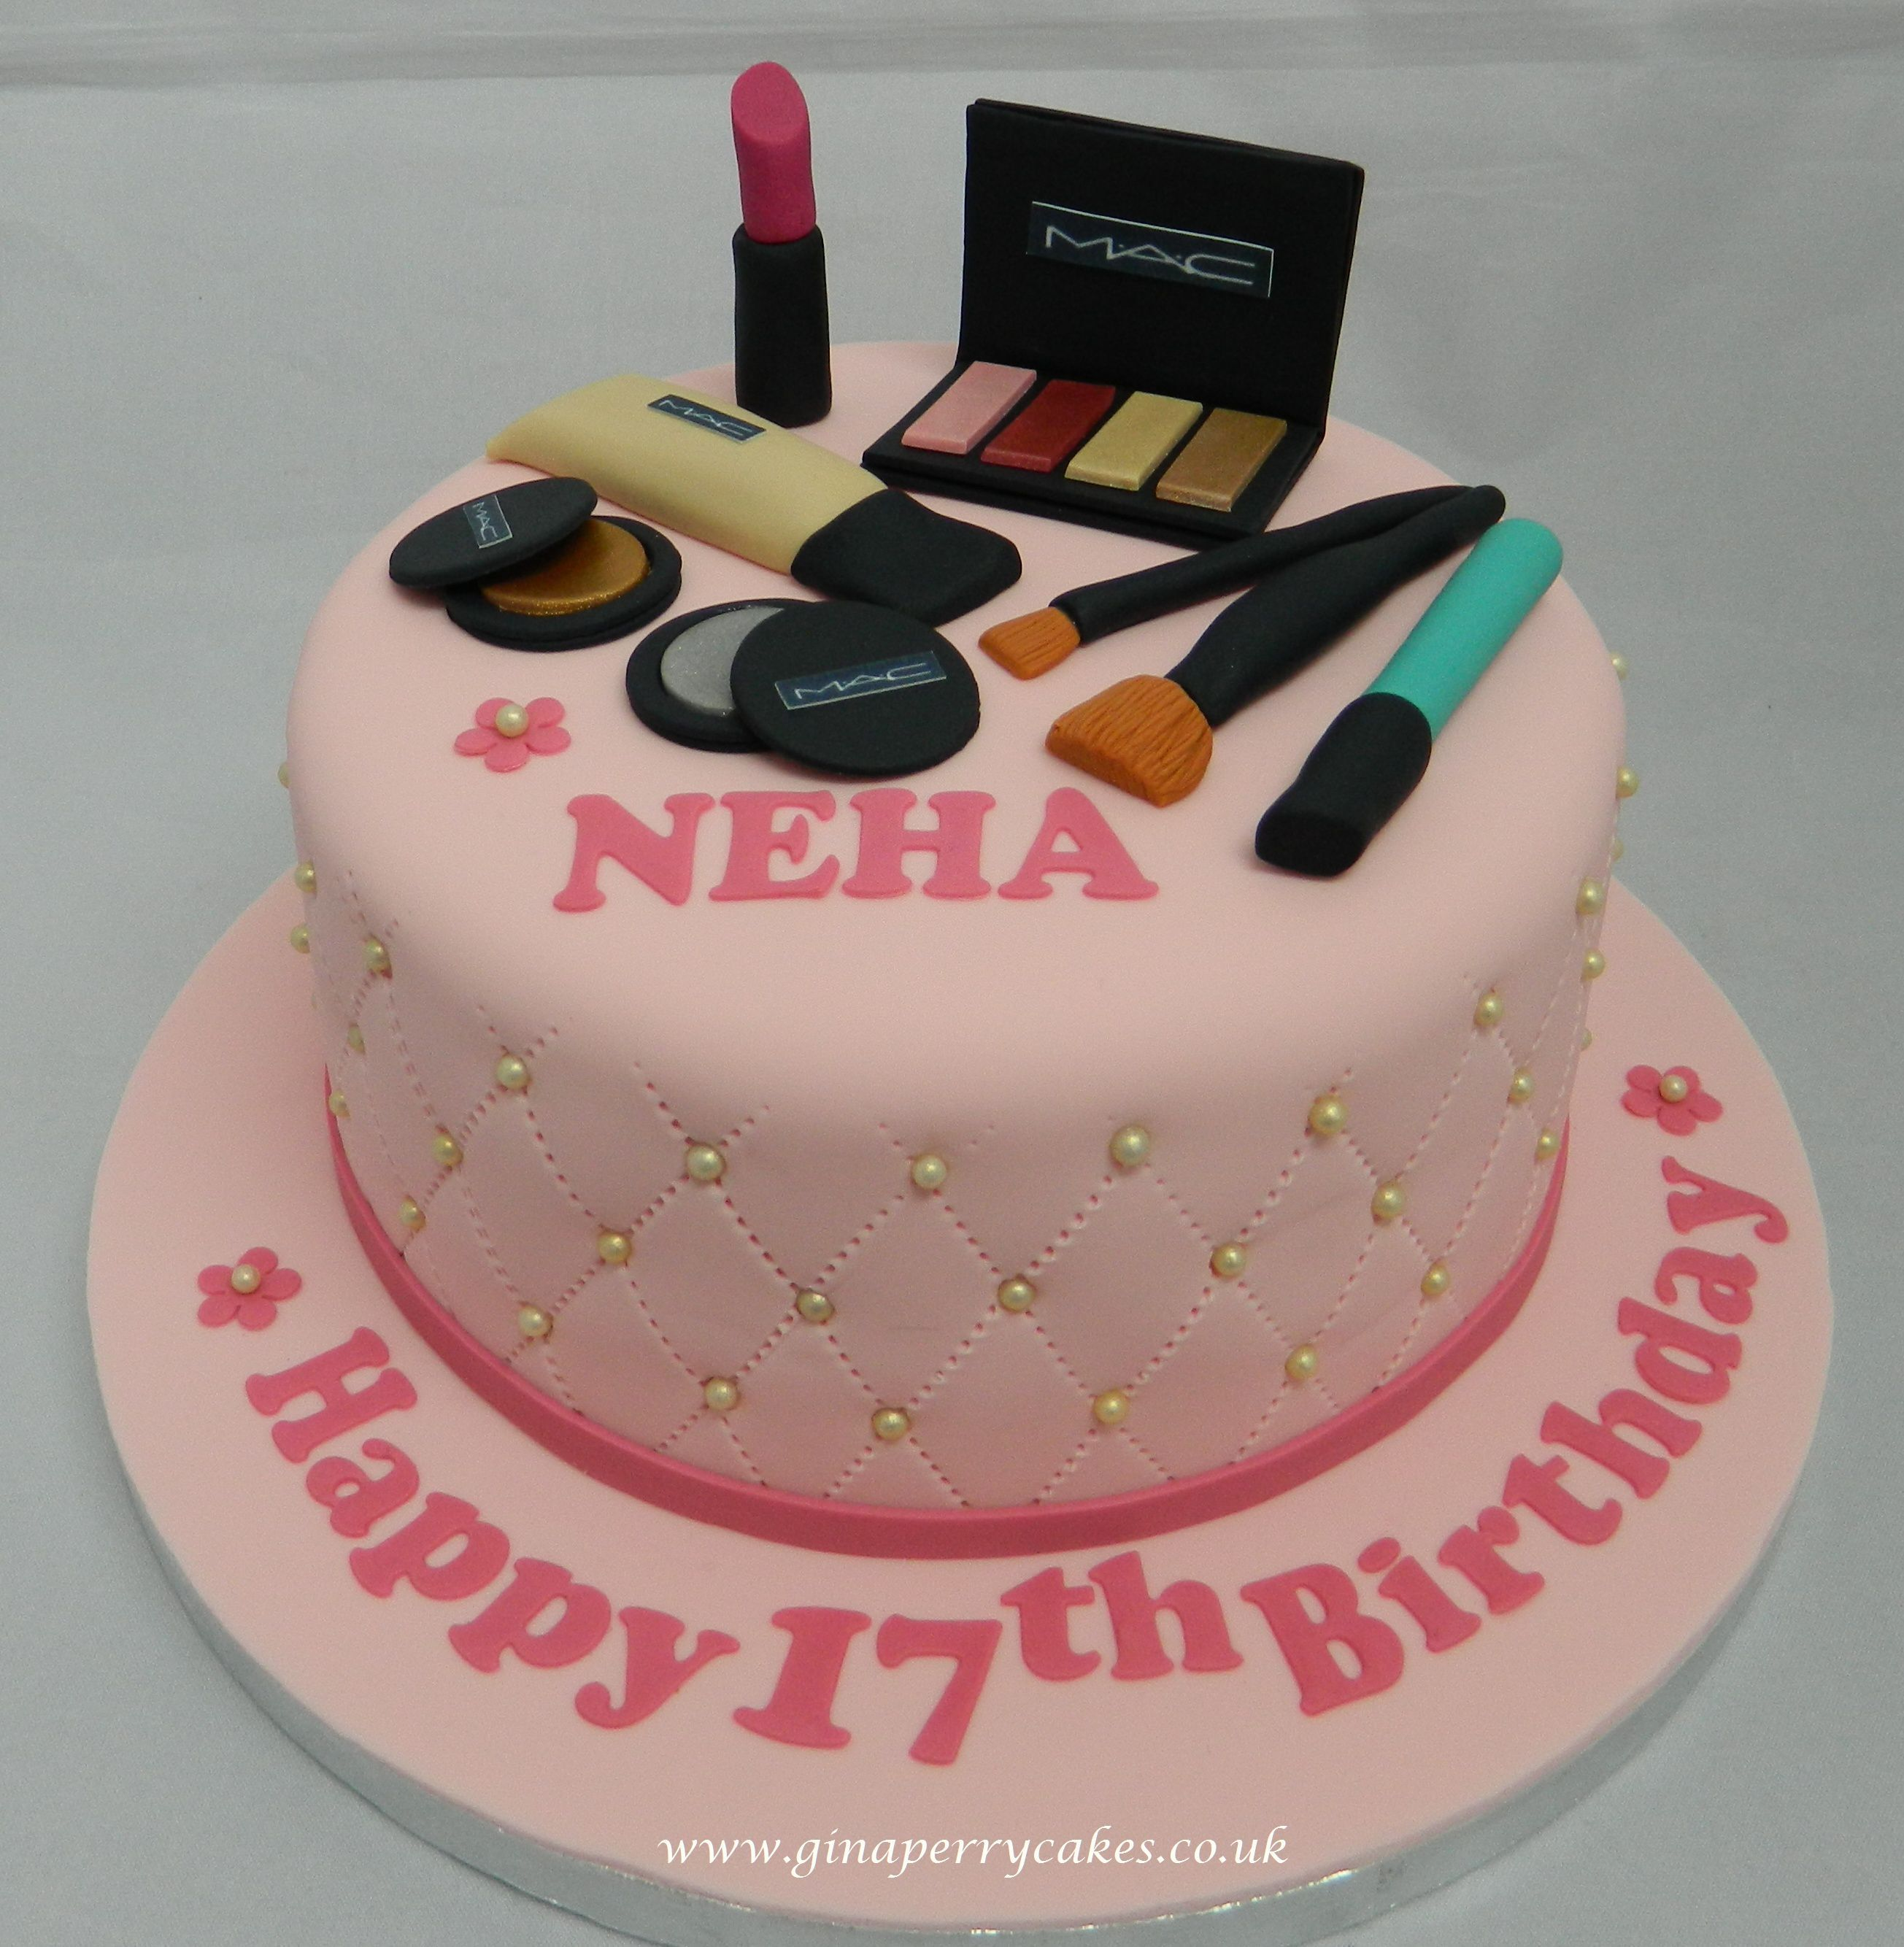 Marvelous Make Up Themed Birthday Cake For A Teenager With Images Birthday Cards Printable Opercafe Filternl